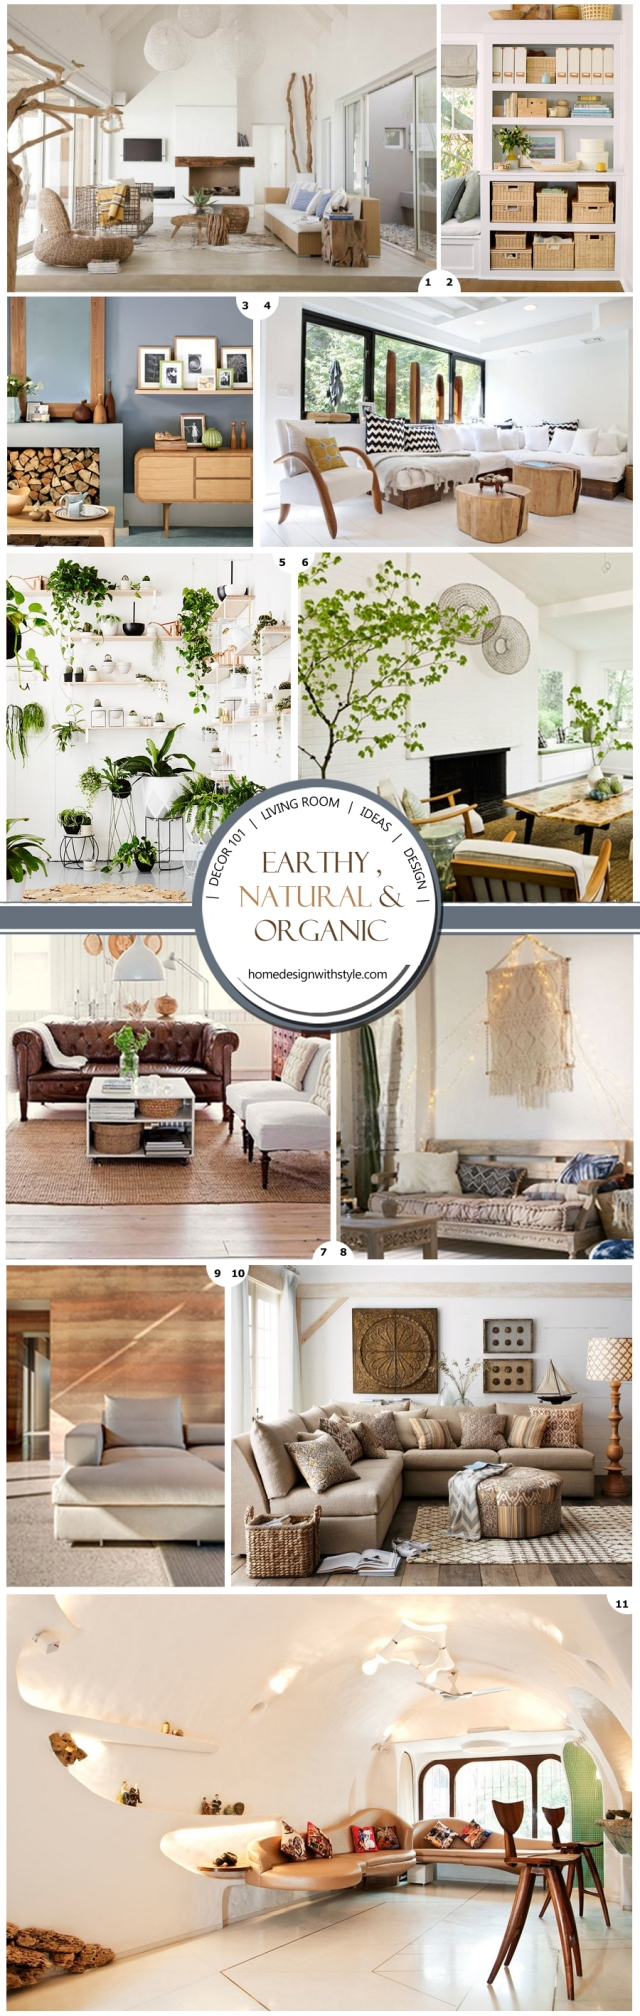 earhty-natural-living-room-decor-pin